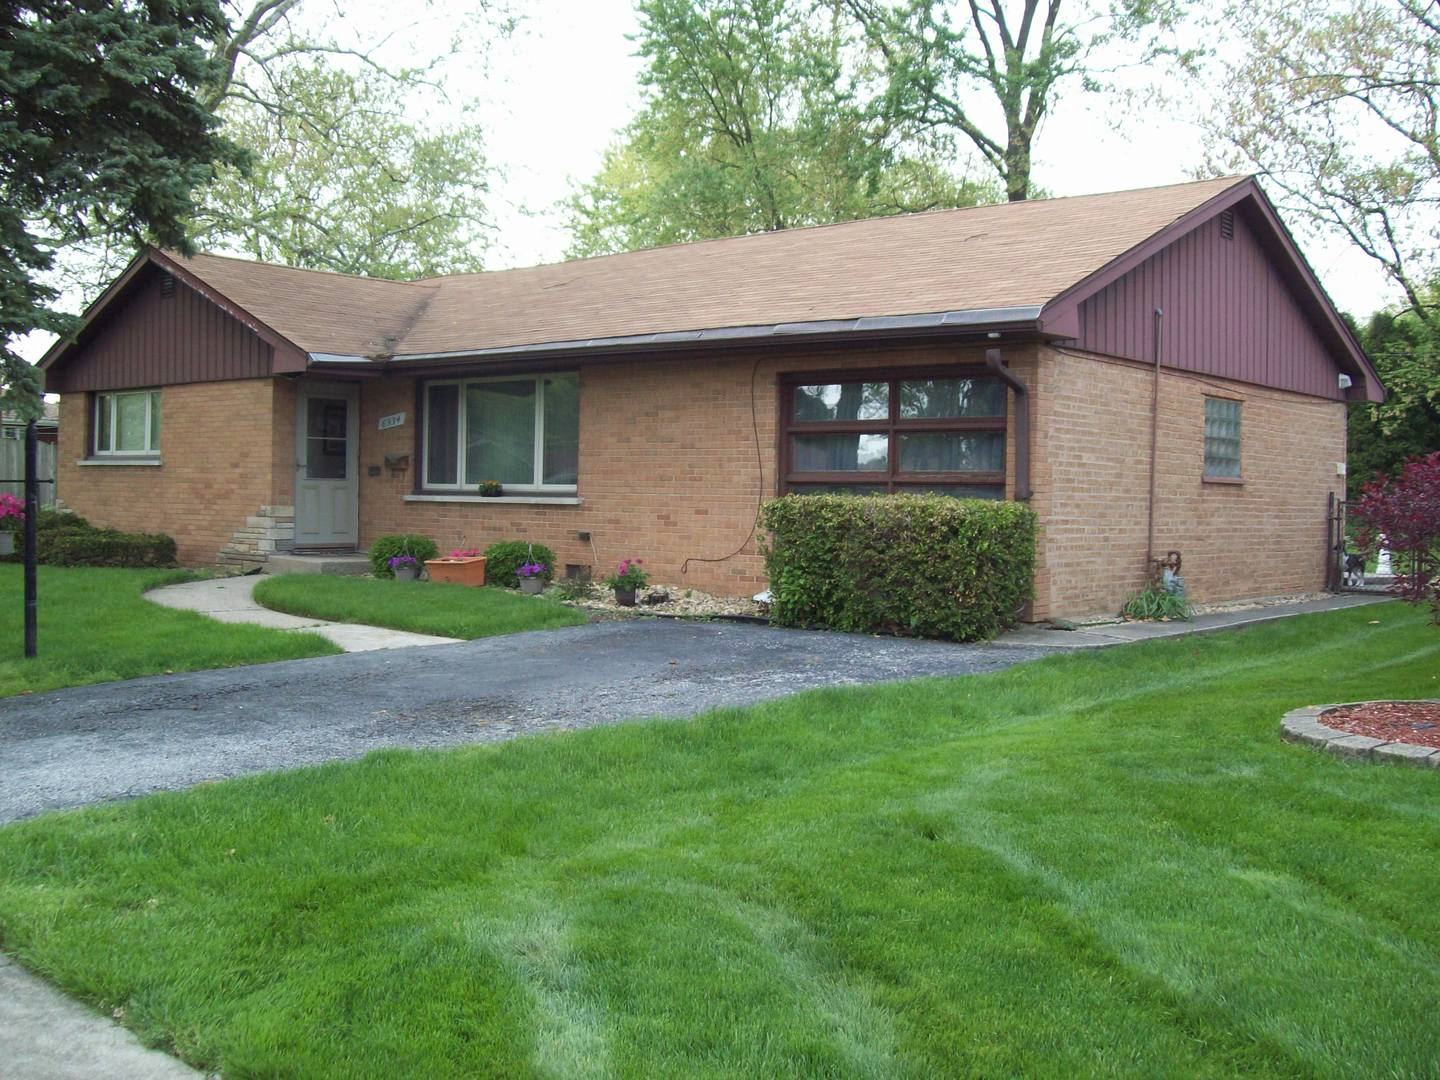 ... 6934 West 115th Place, Worth, IL 60482 ...